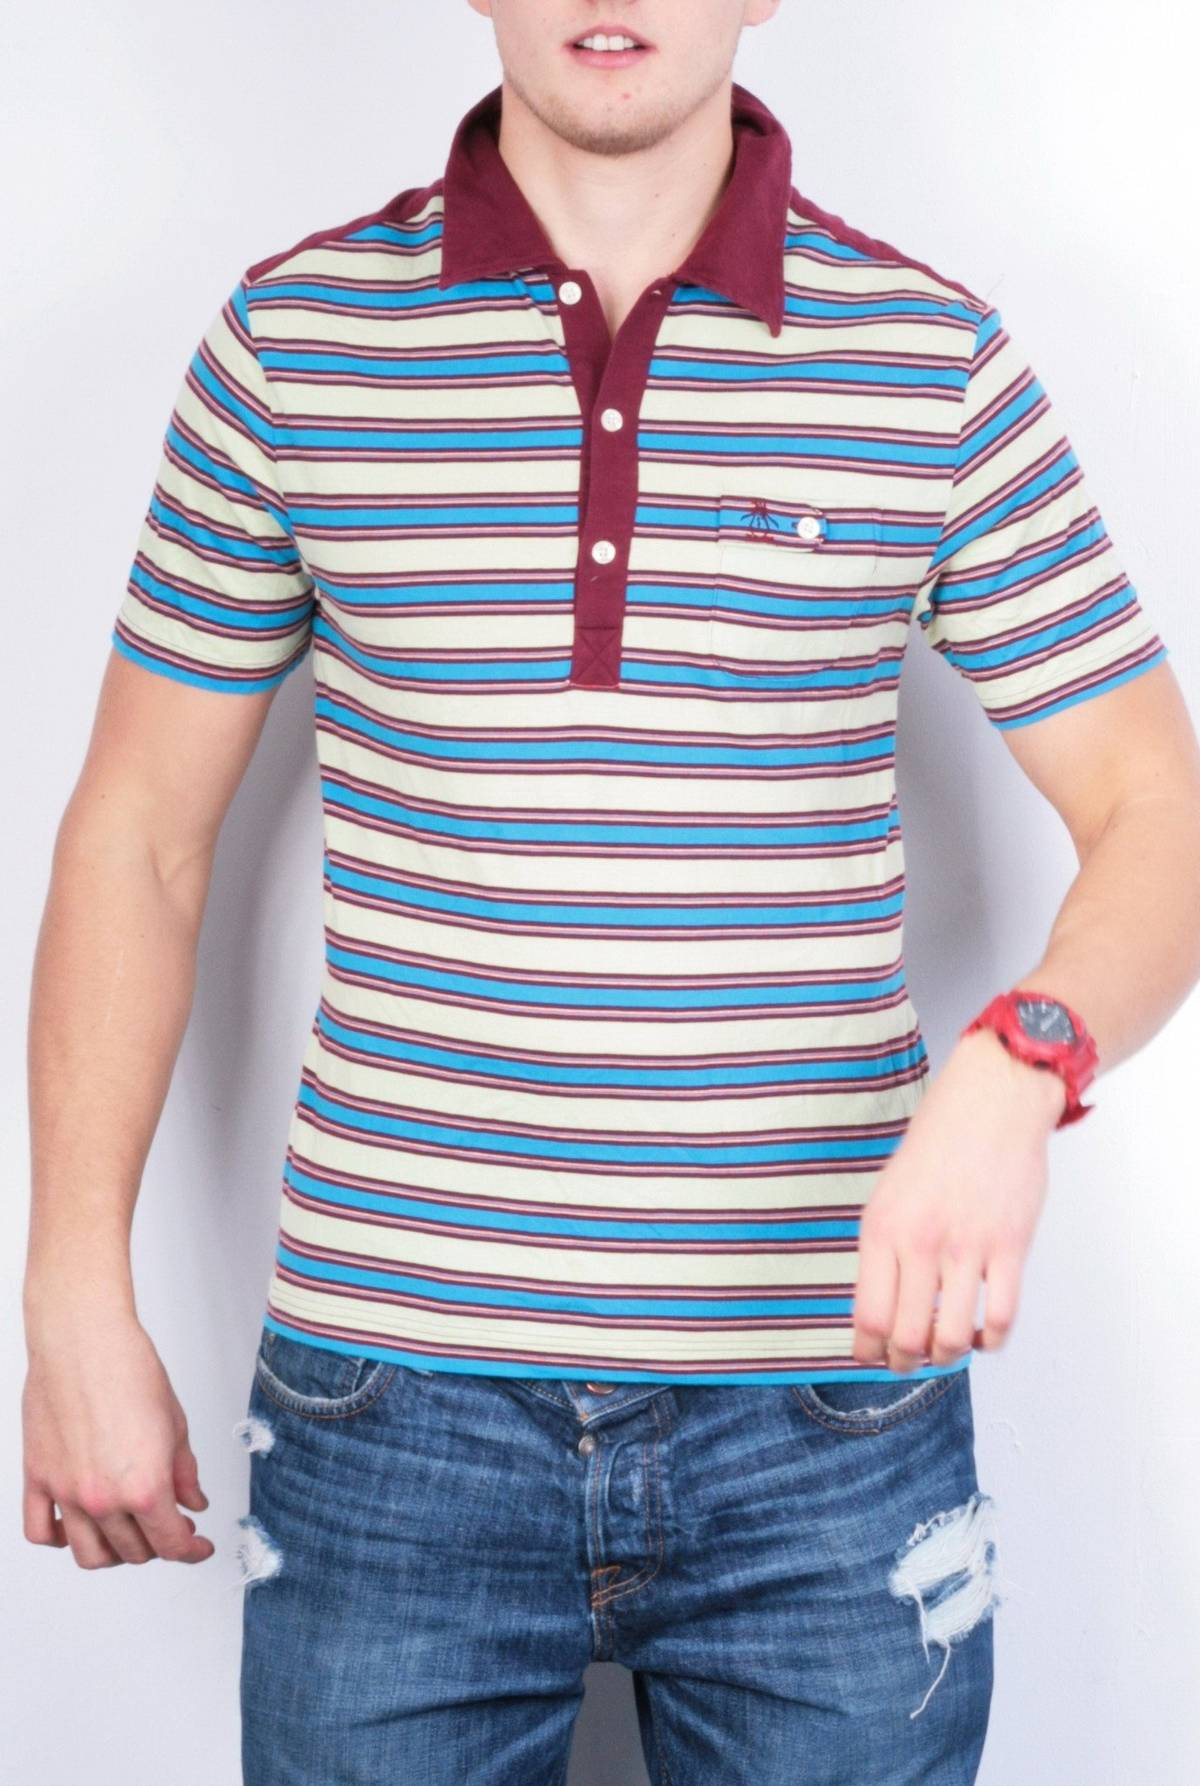 Original Penguin Penguin Mens M Polo Shirt Striped Multi Cotton